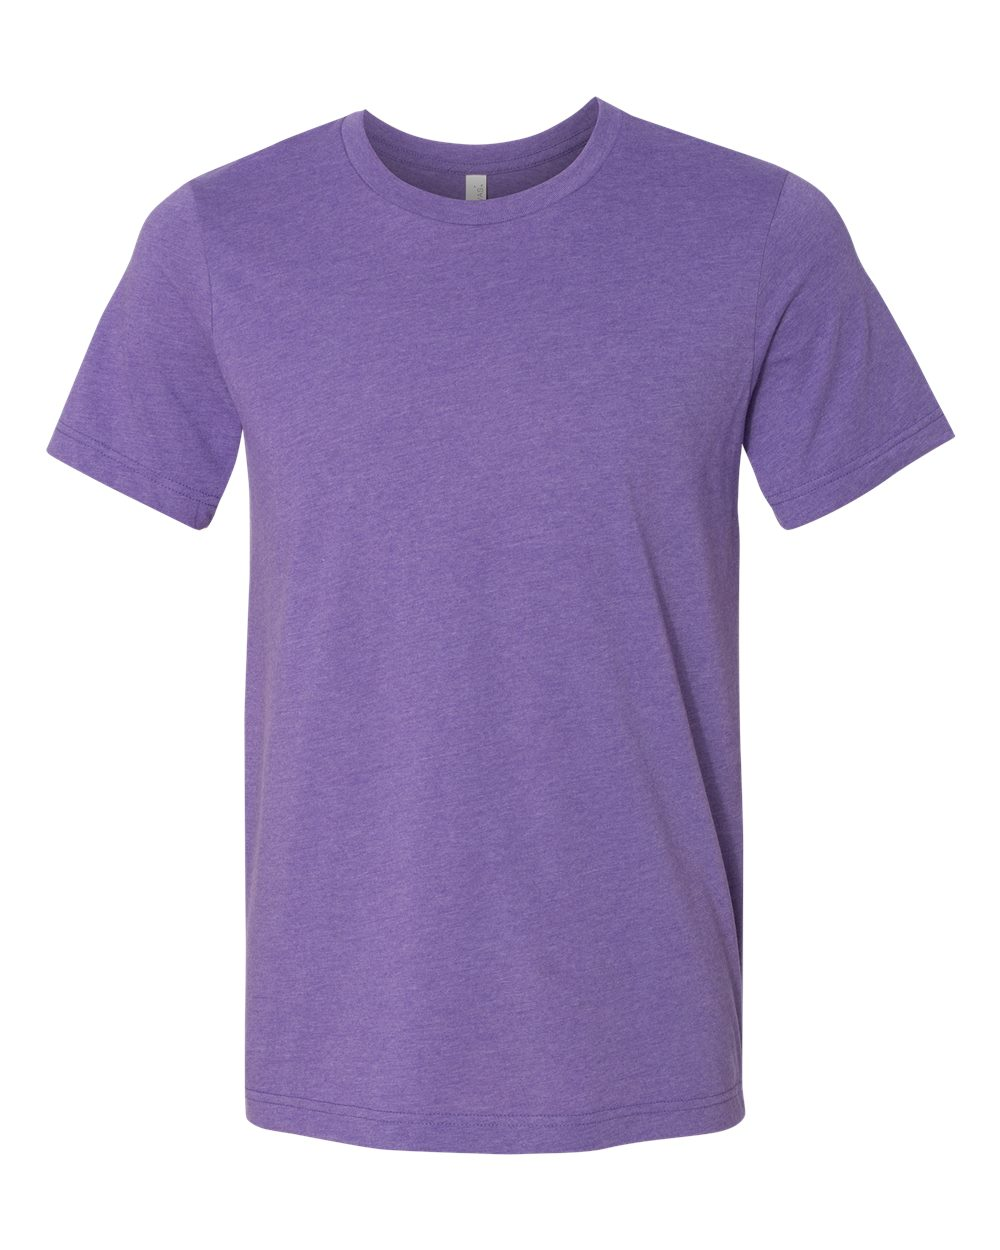 click to view Heather Team Purple